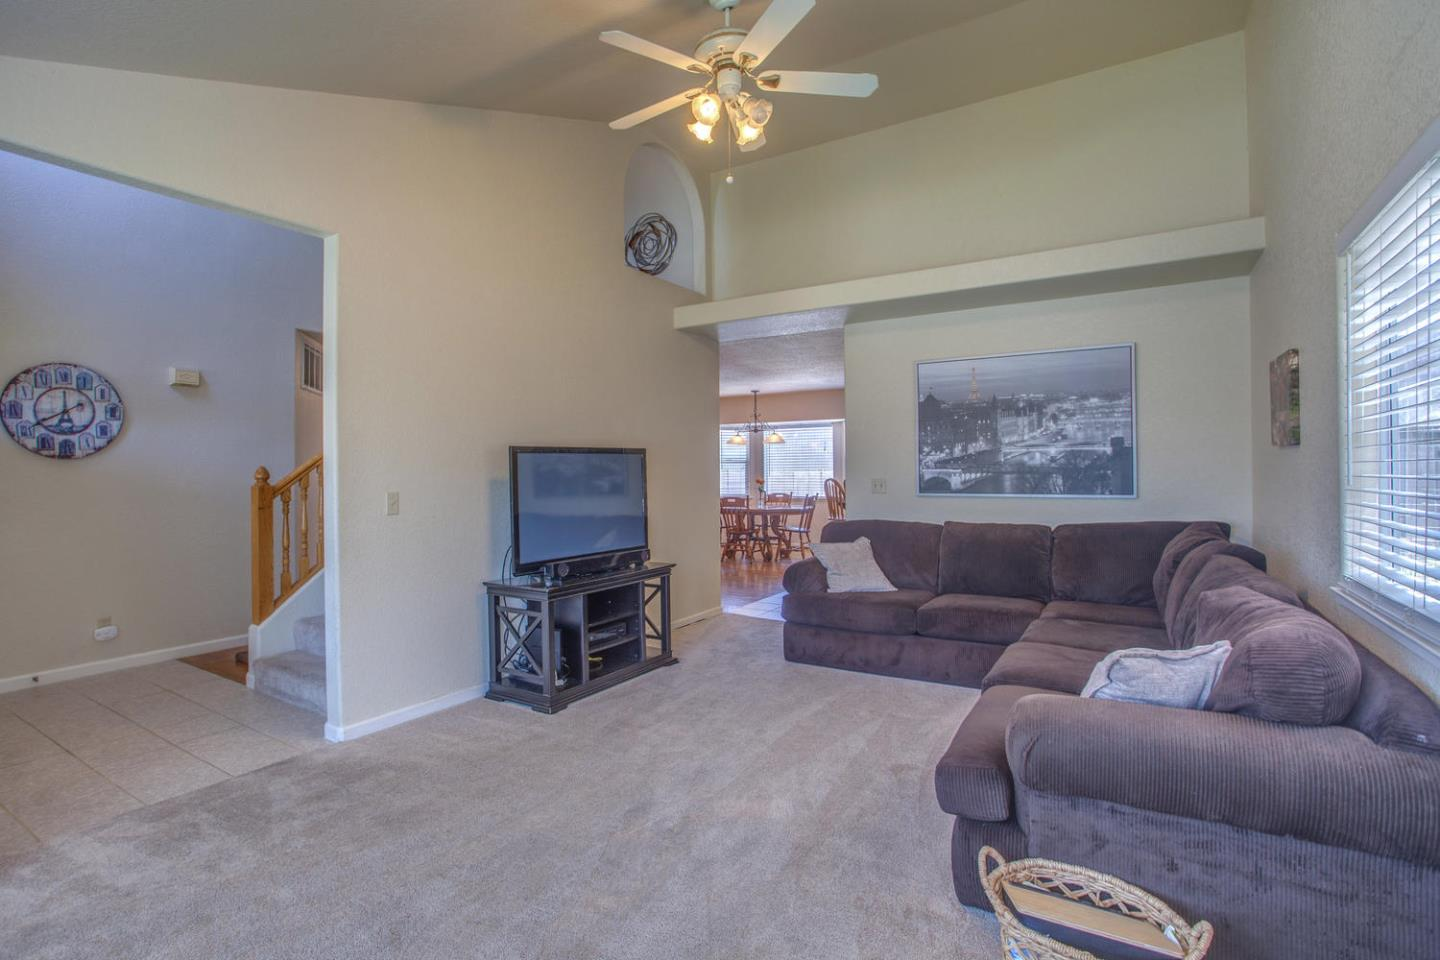 Additional photo for property listing at 590 Verona Place  Hollister, California 95023 United States